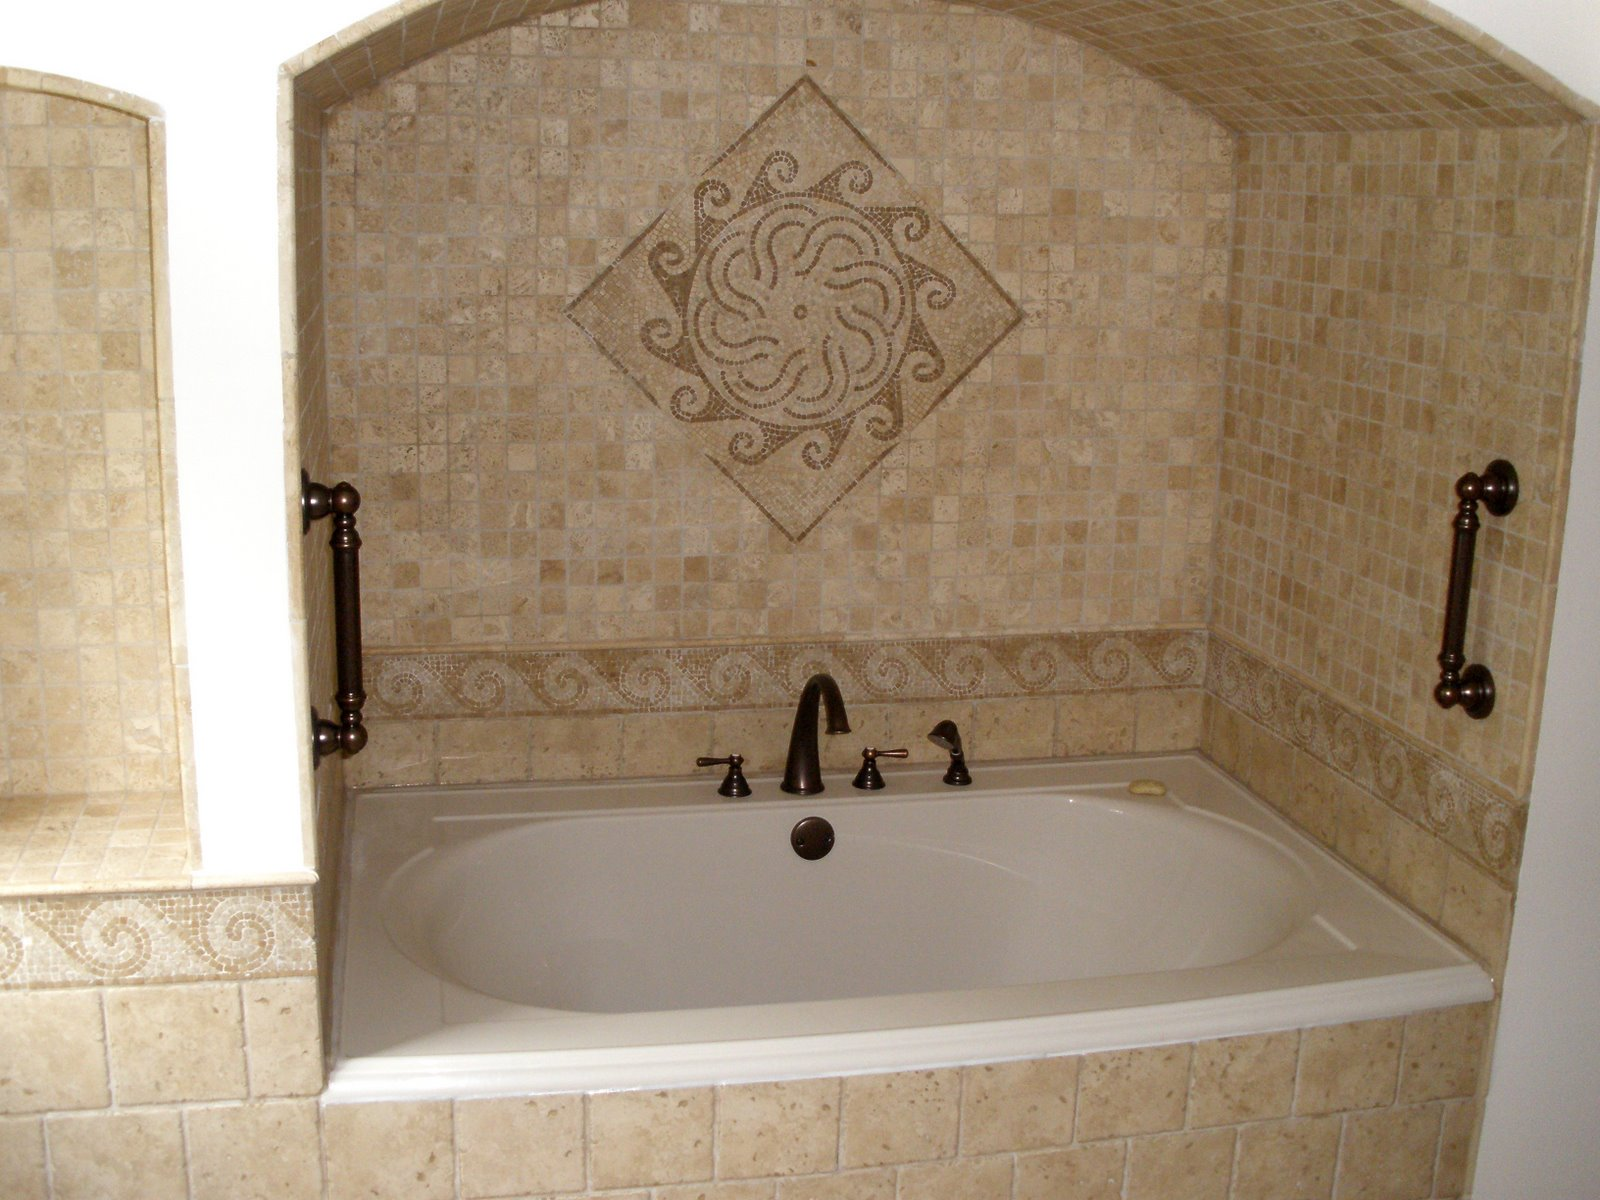 Shower Tile Ideas Designs bathroom small bathroom design plans interior ideas Design Ideas Interior For Life Patterns Shower Tiles Olympus Digital Camera